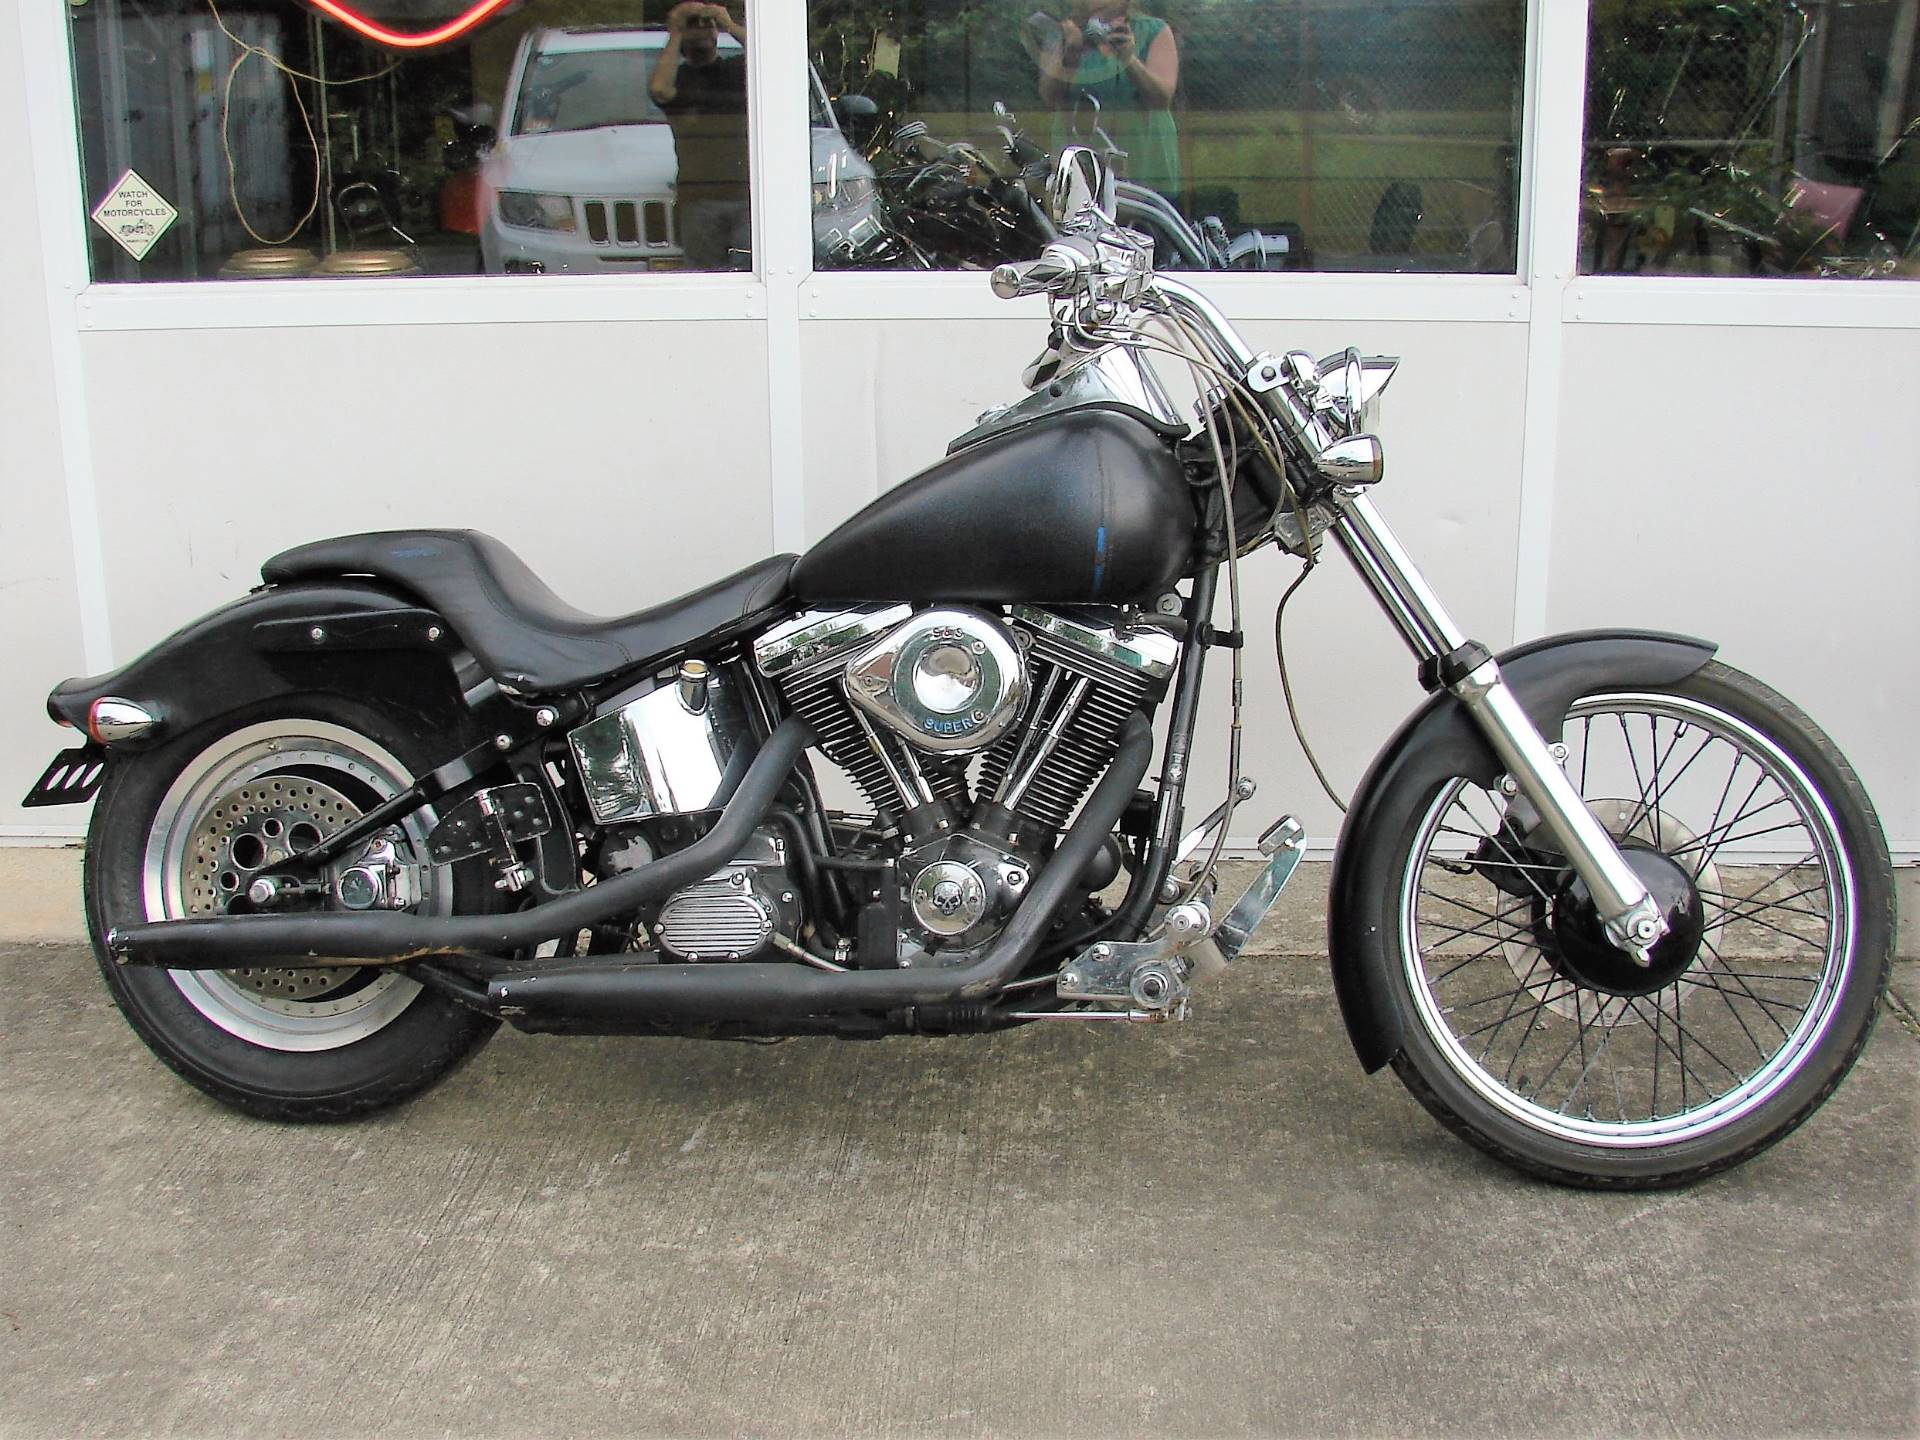 1998 Harley-Davidson FXSTC Softail Custom  (Black) in Williamstown, New Jersey - Photo 9